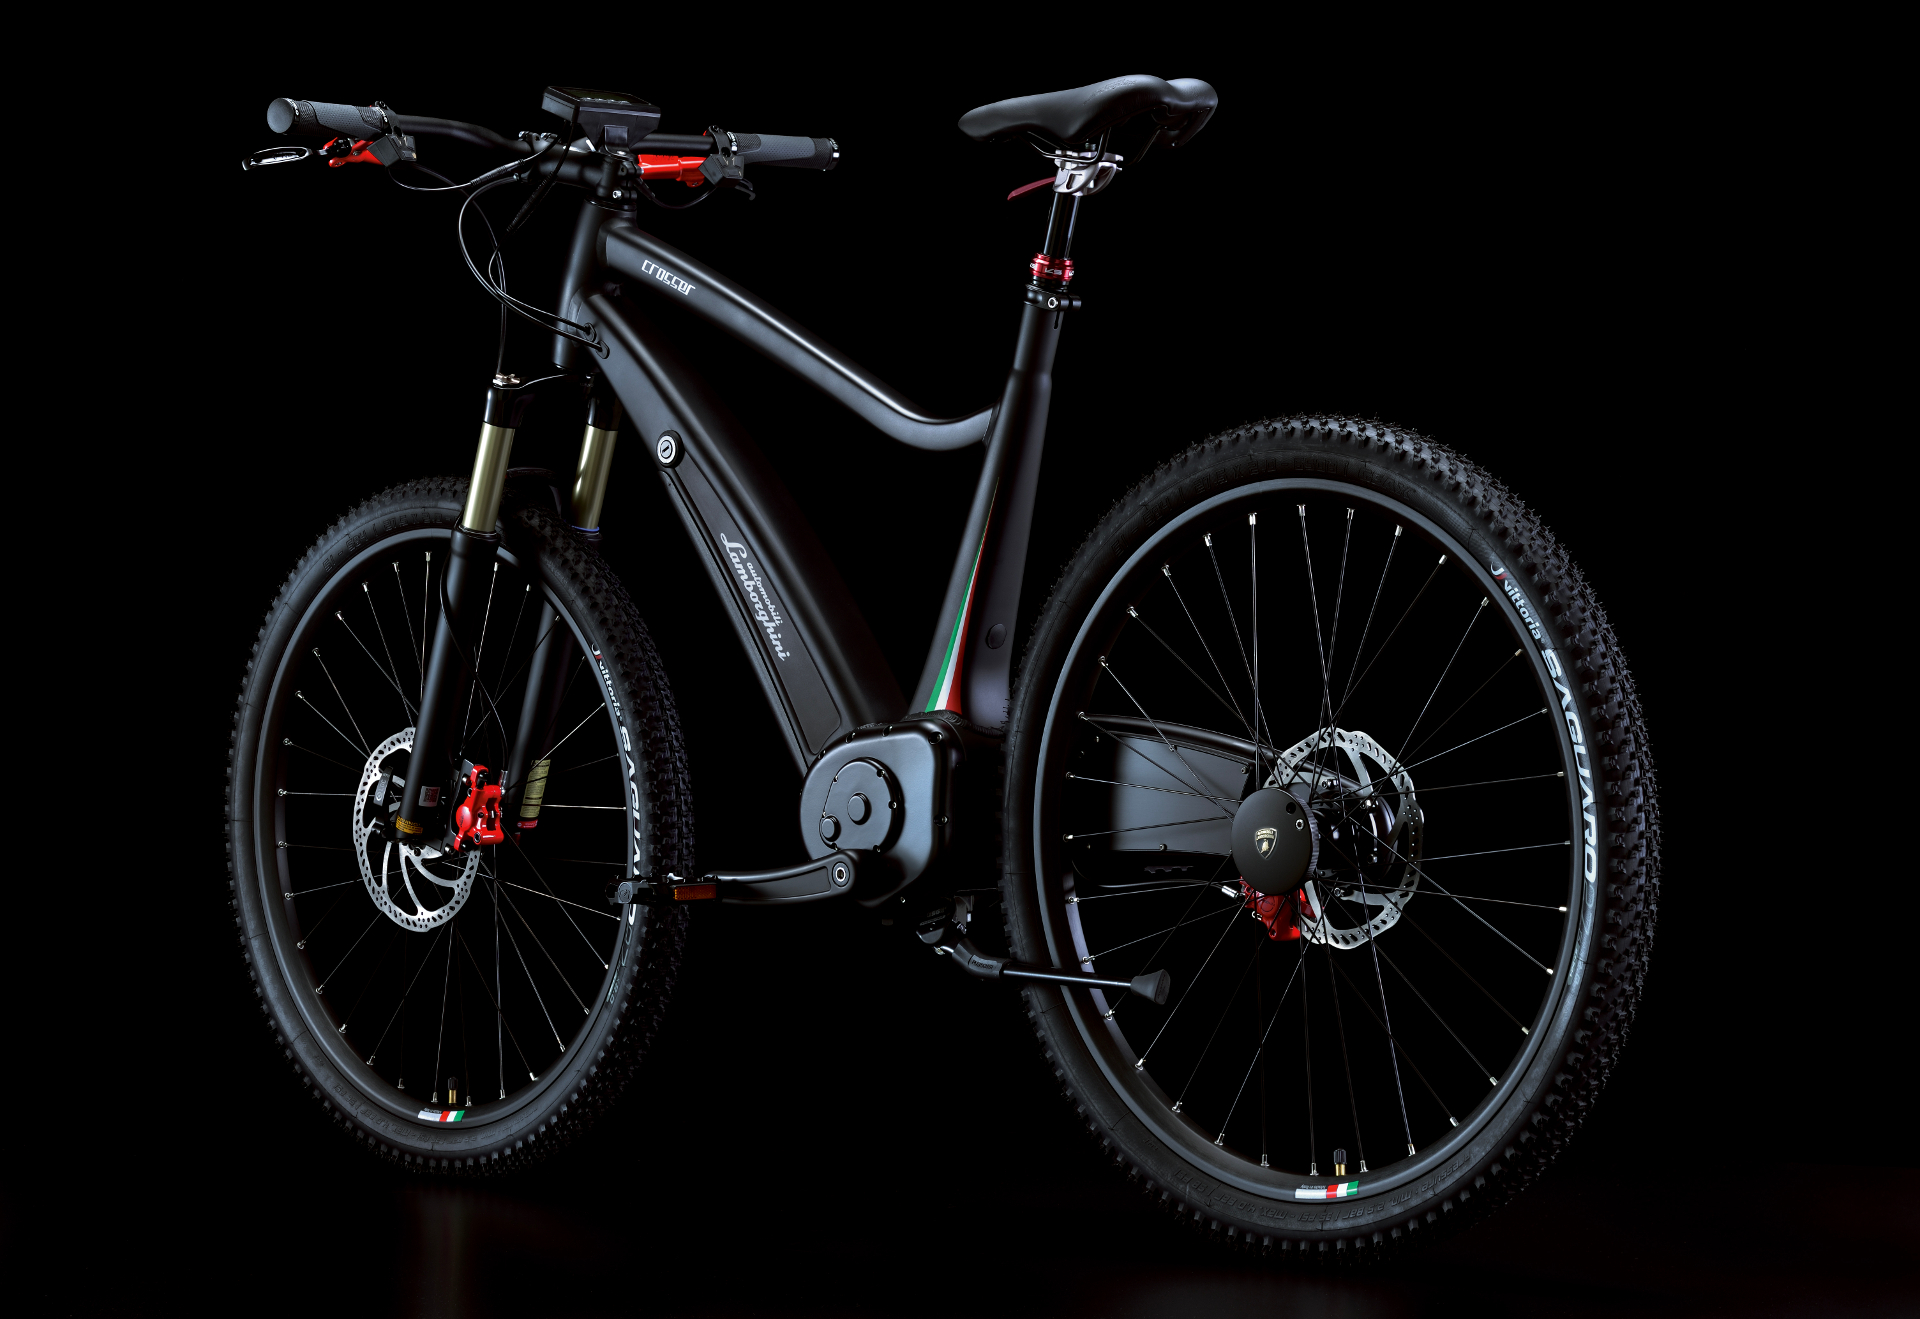 Lamborghini Crosser Sporter Electric Bike Forum Q A Help